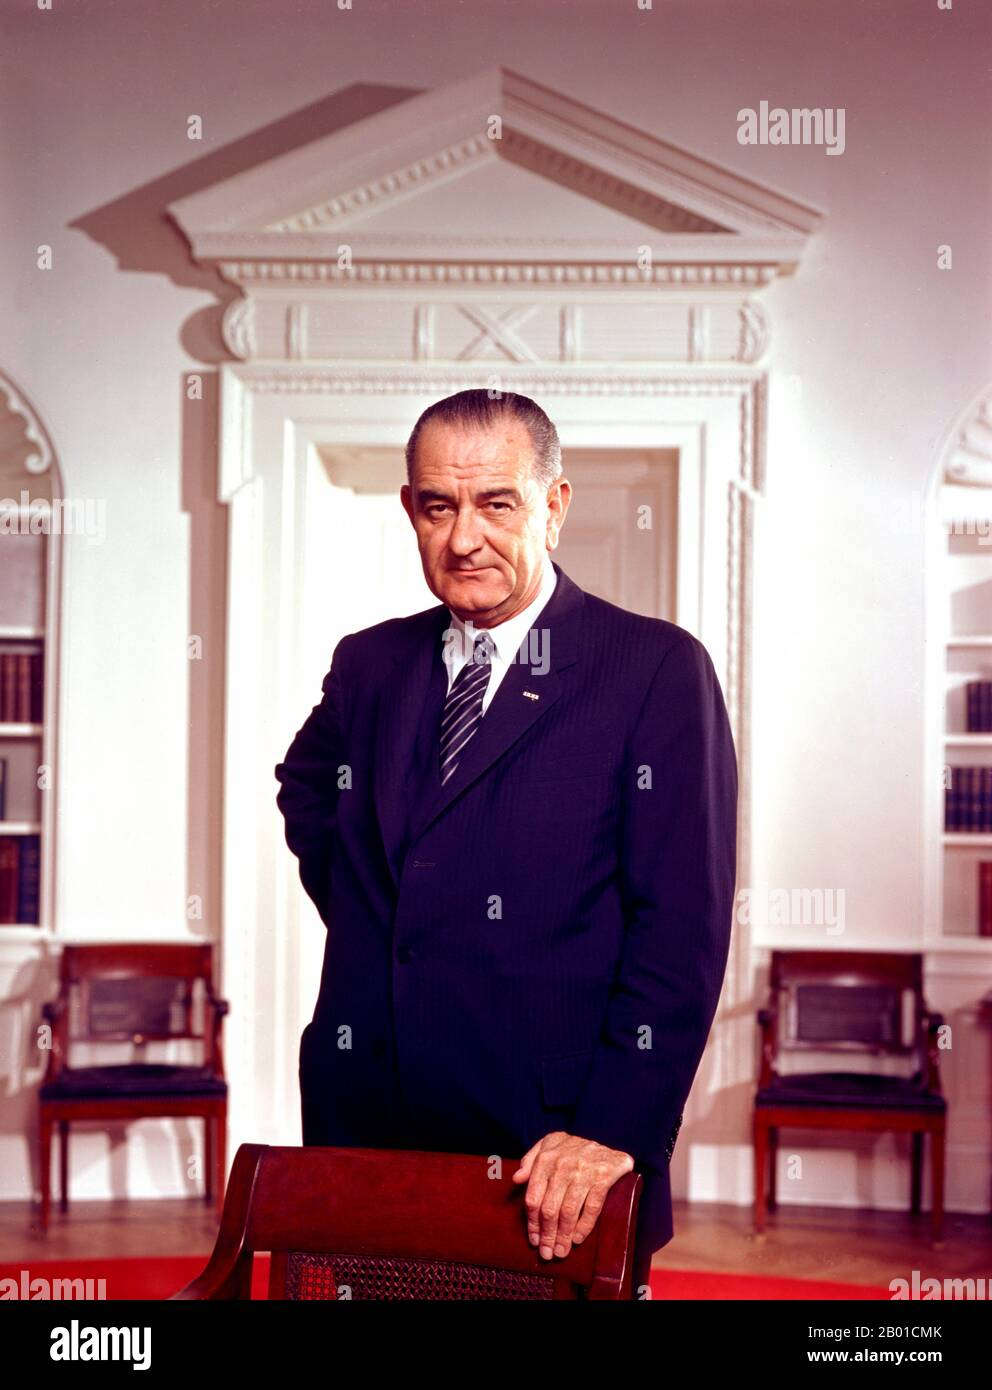 Lyndon Baines Johnson (August 27, 1908 – January 22, 1973), often referred to as LBJ, was the 36th President of the United States (1963–1969) after his service as the 37th Vice President of the United States (1961–1963). He is one of only four people who served in all four elected federal offices of the United States: Representative, Senator, Vice President and President.  Johnson, a Democrat, served as a United States Representative from Texas, from 1937–1949 and as United States Senator from 1949–1961, including six years as United States Senate Majority Leader, two as Senate Minority Leader Stock Photo